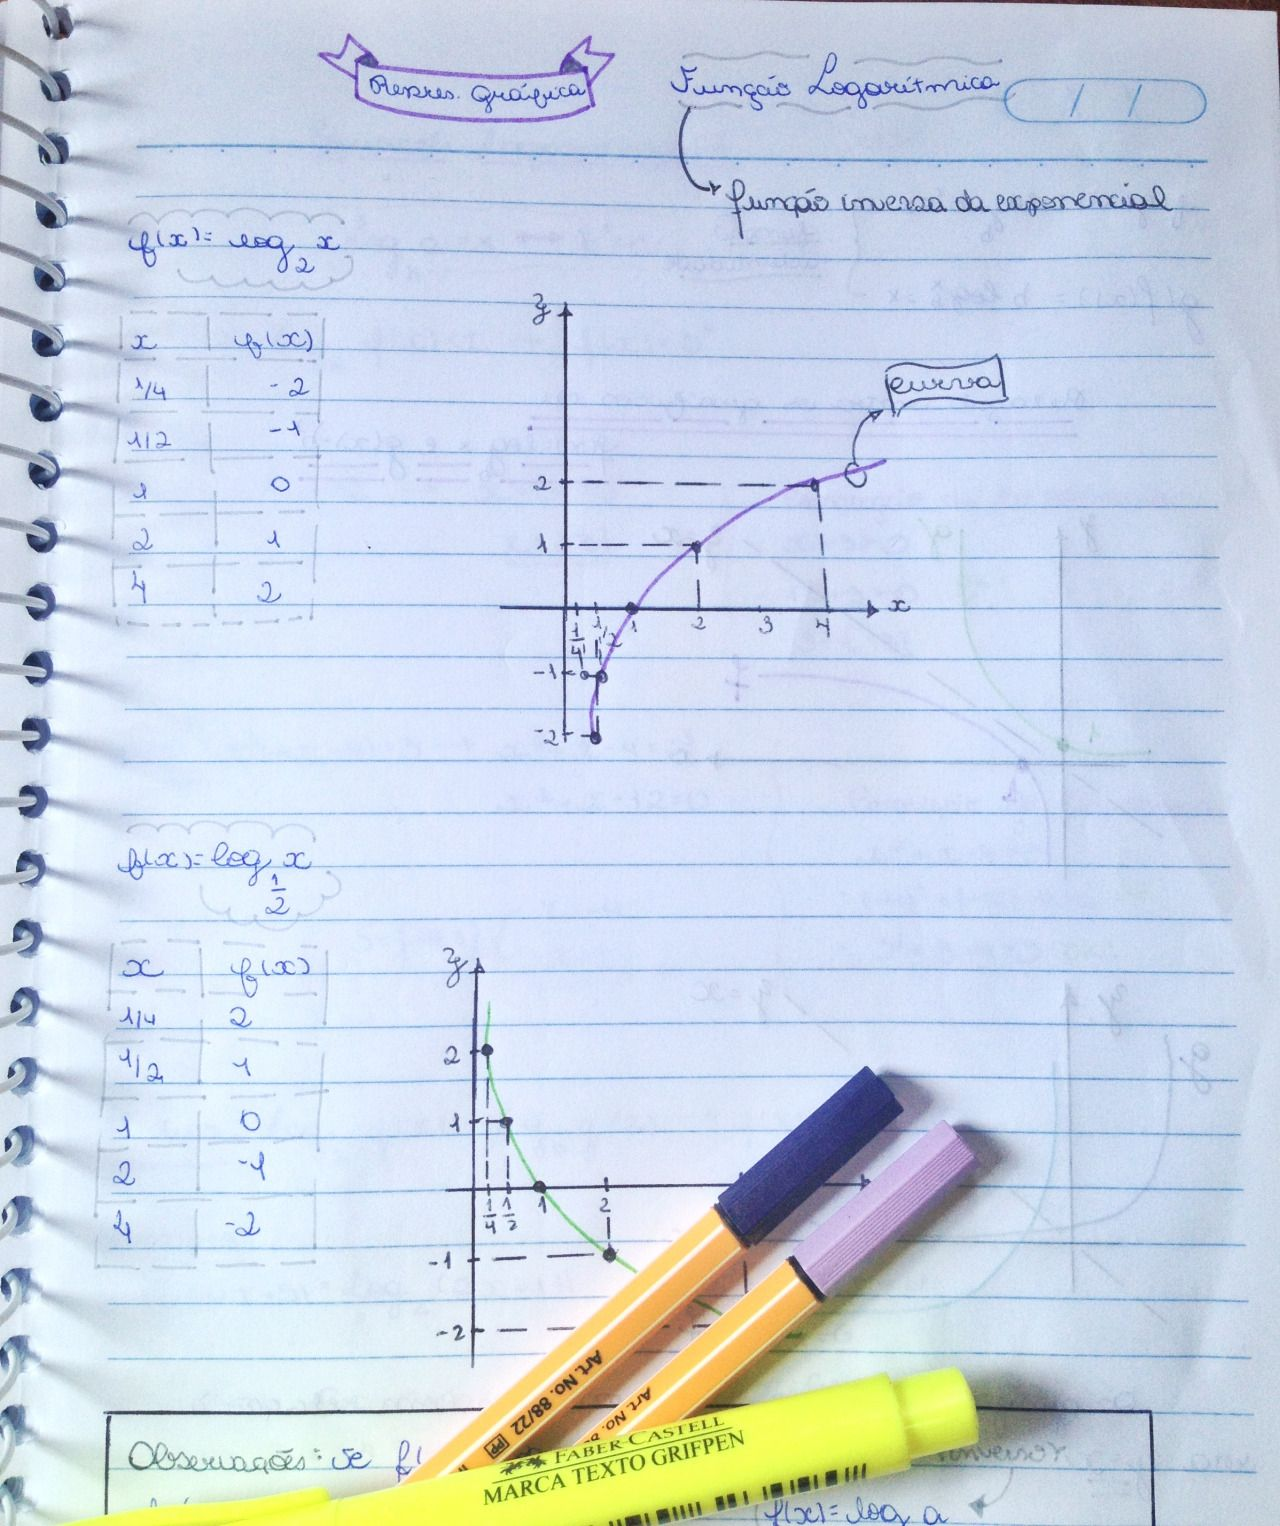 Wwwstudying 12112015 drawing graphs is my passion algebra ana a brazilian studyblr in the freshmen year of high school dont forget to stay positive fandeluxe Images